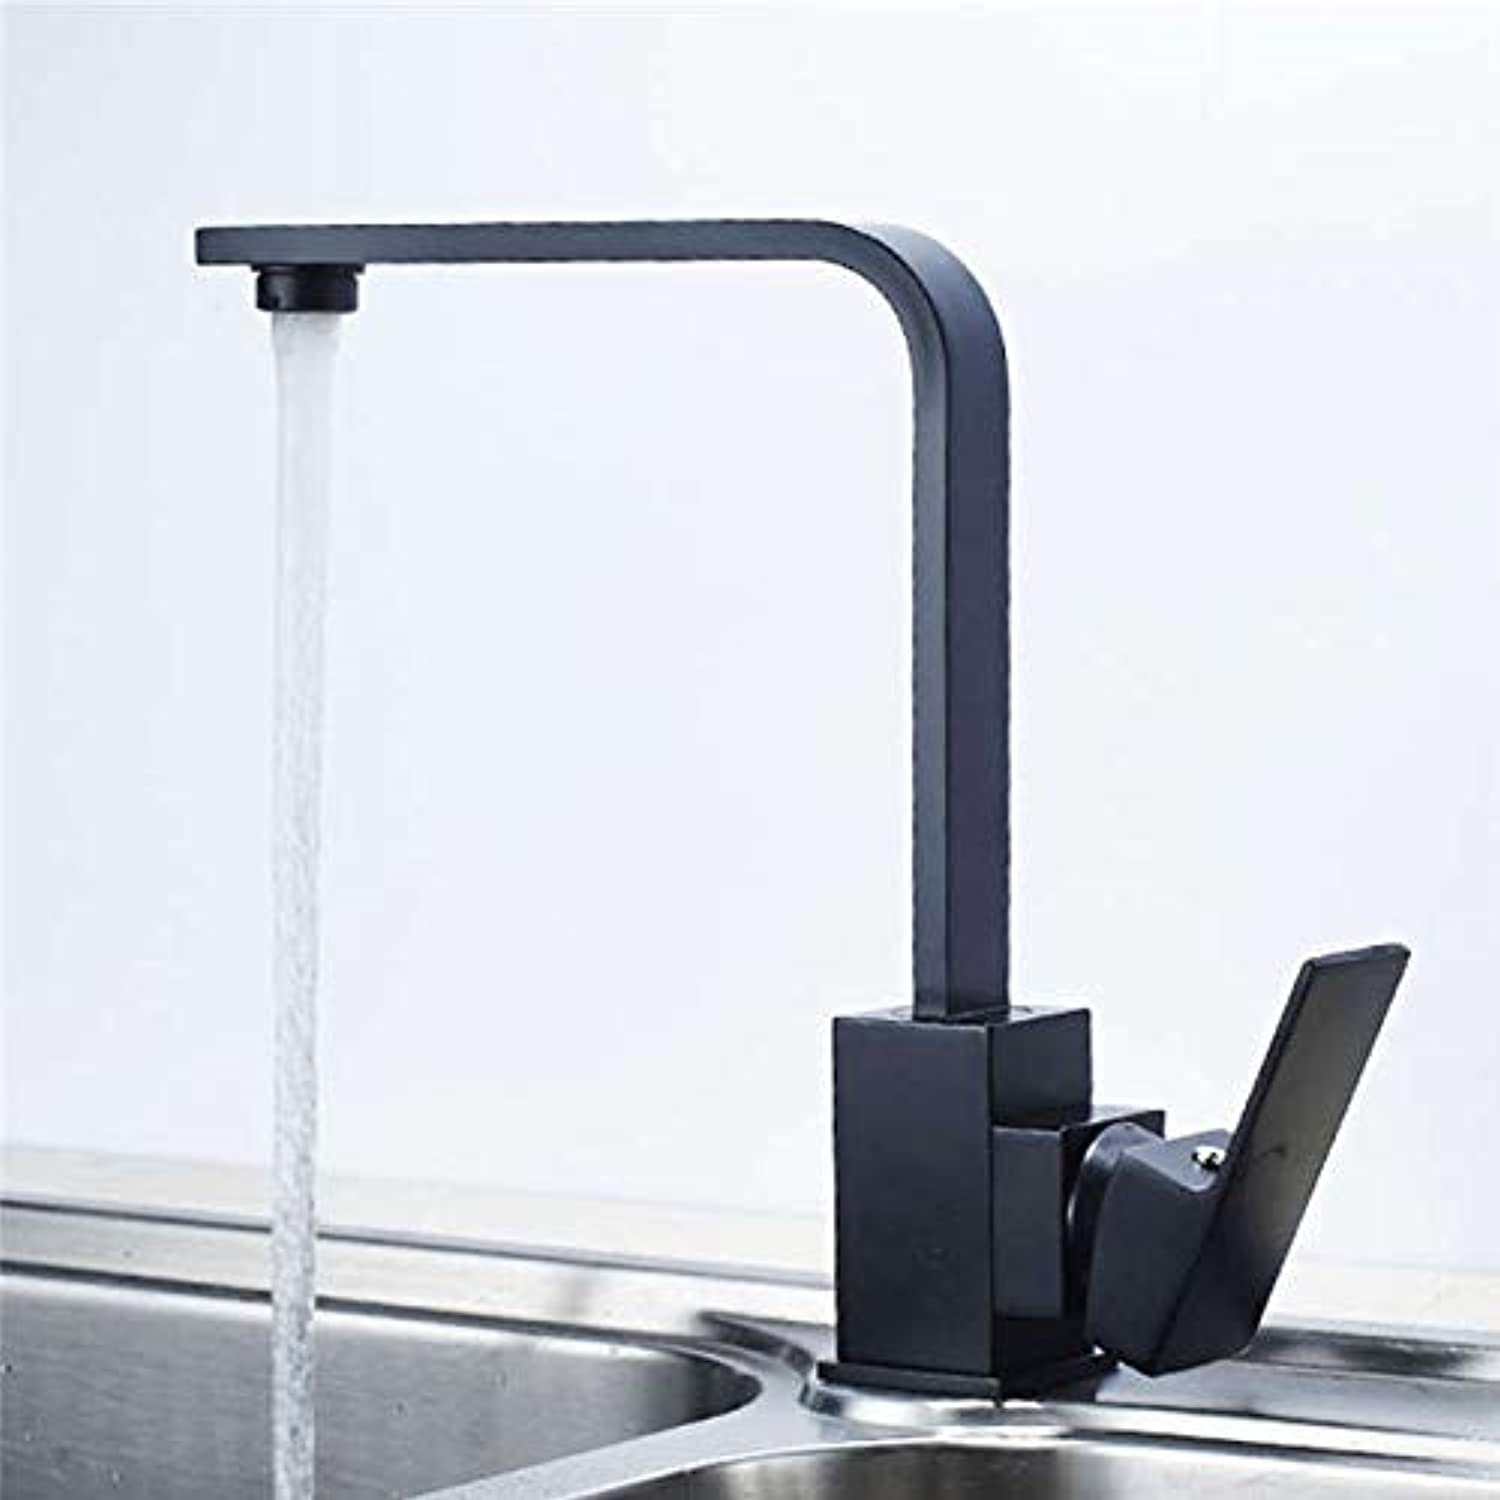 Decorry Kitchen Faucet Black Antique Water Mixer 360 Degree redatable Kitchen Water Taps Cold and Hot Water Sink Faucets Yd-1031